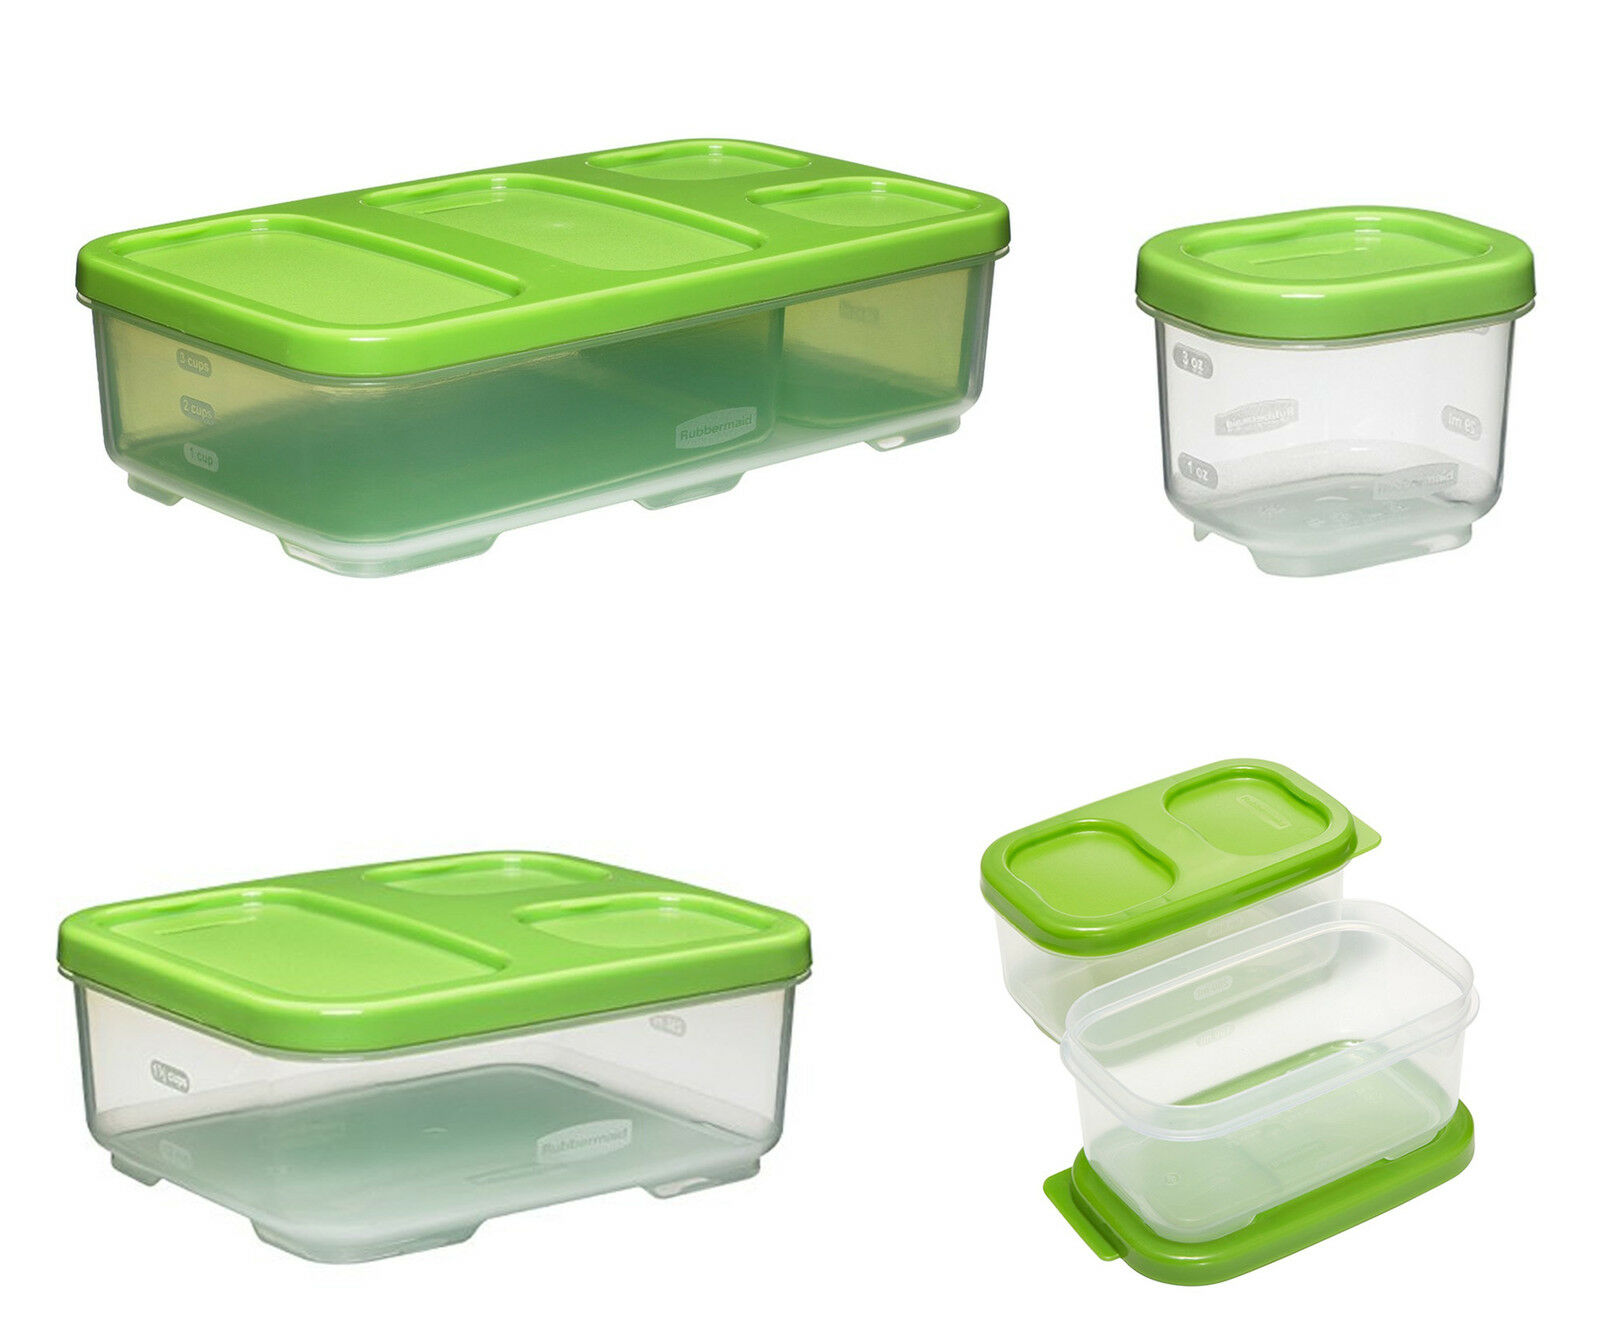 Rubbermaid Lunchblox Kids Food Containers 12 Sizes Ebay